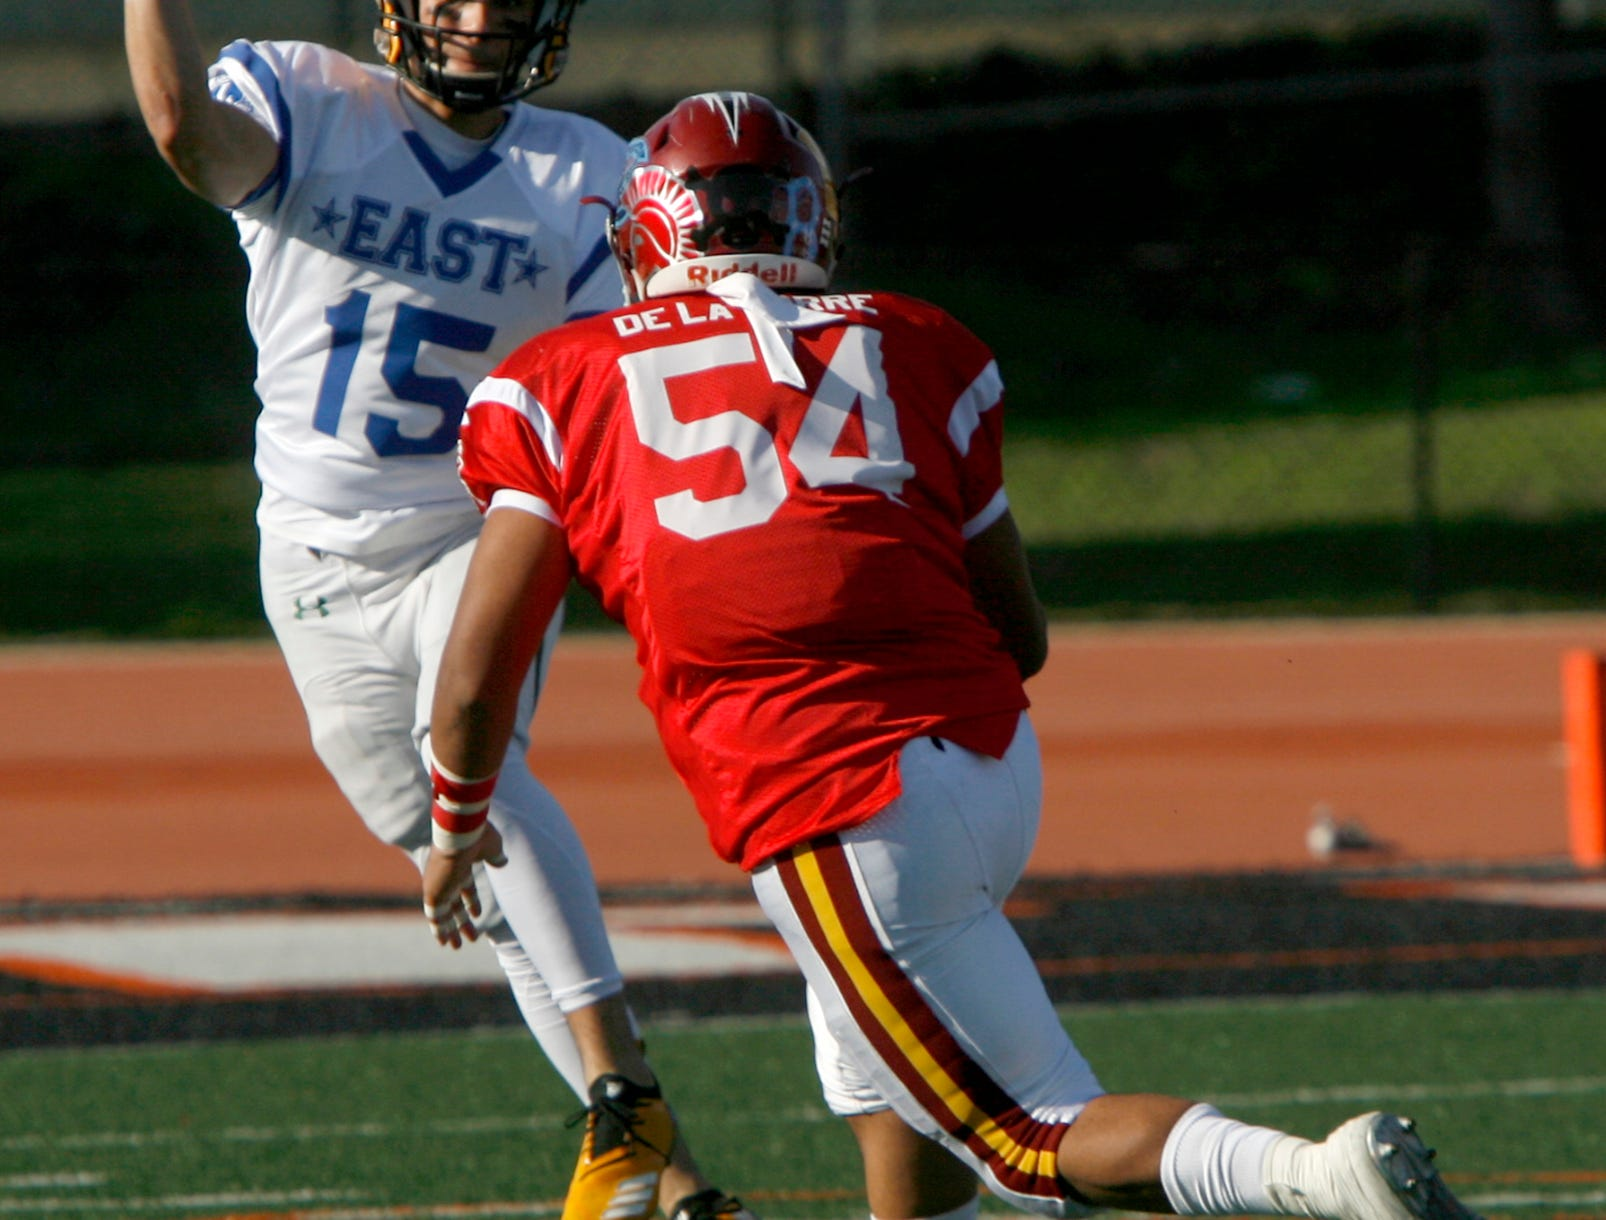 After getting flushed out of the pocket, East All-Star quarterback Steven McDaniel looks to pass on the run as West All-Star defensive lineman Gilbert De La Torre gives chase during the West's 35-24 victory in the 46th annual Ventura County High School All-Star Football Game at Ventura College on Saturday.